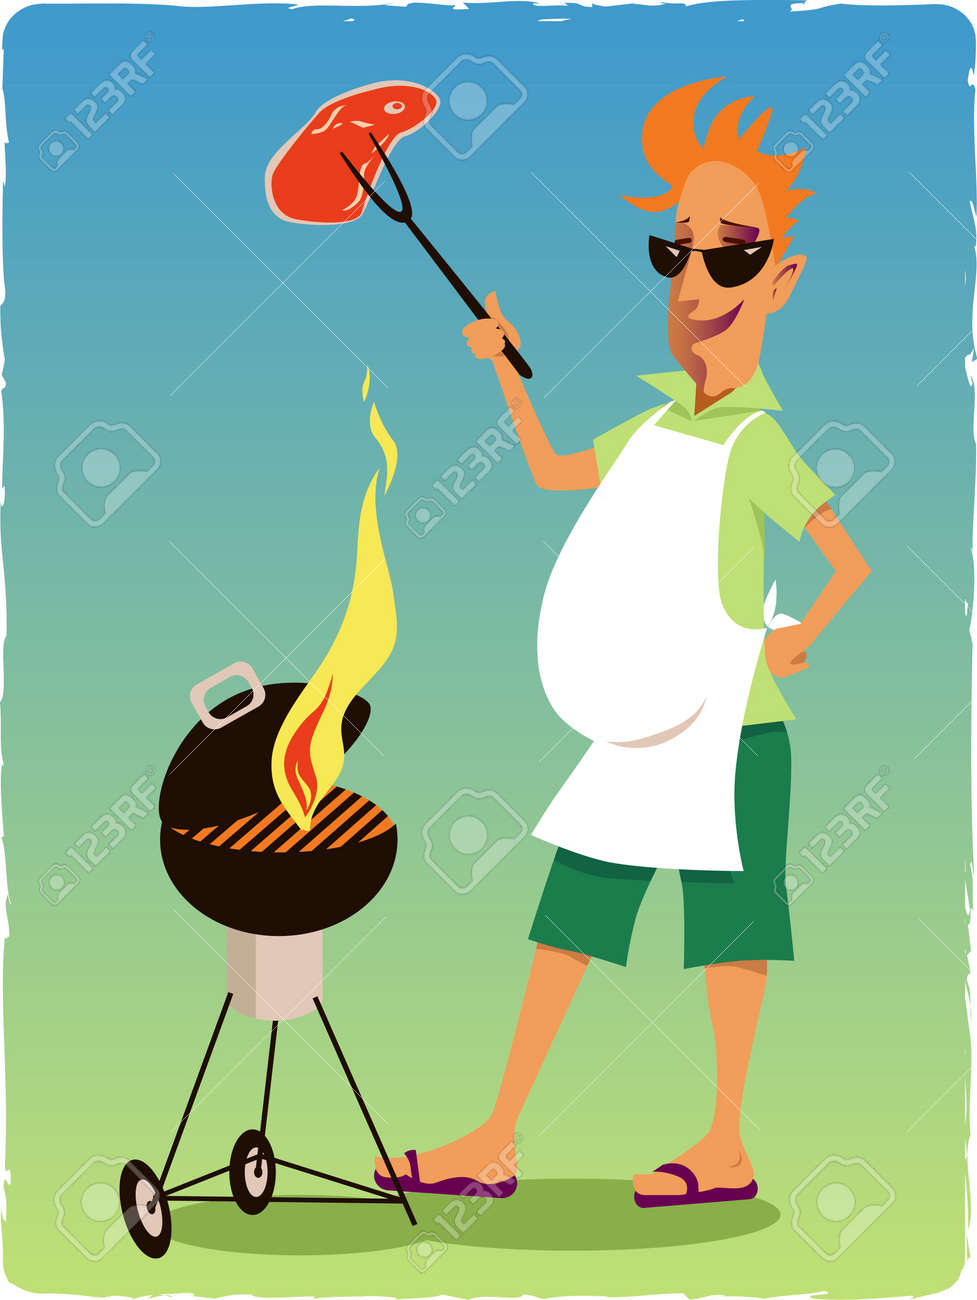 Hapy man bagbecuing steak on a grill Stock Vector - 20302422